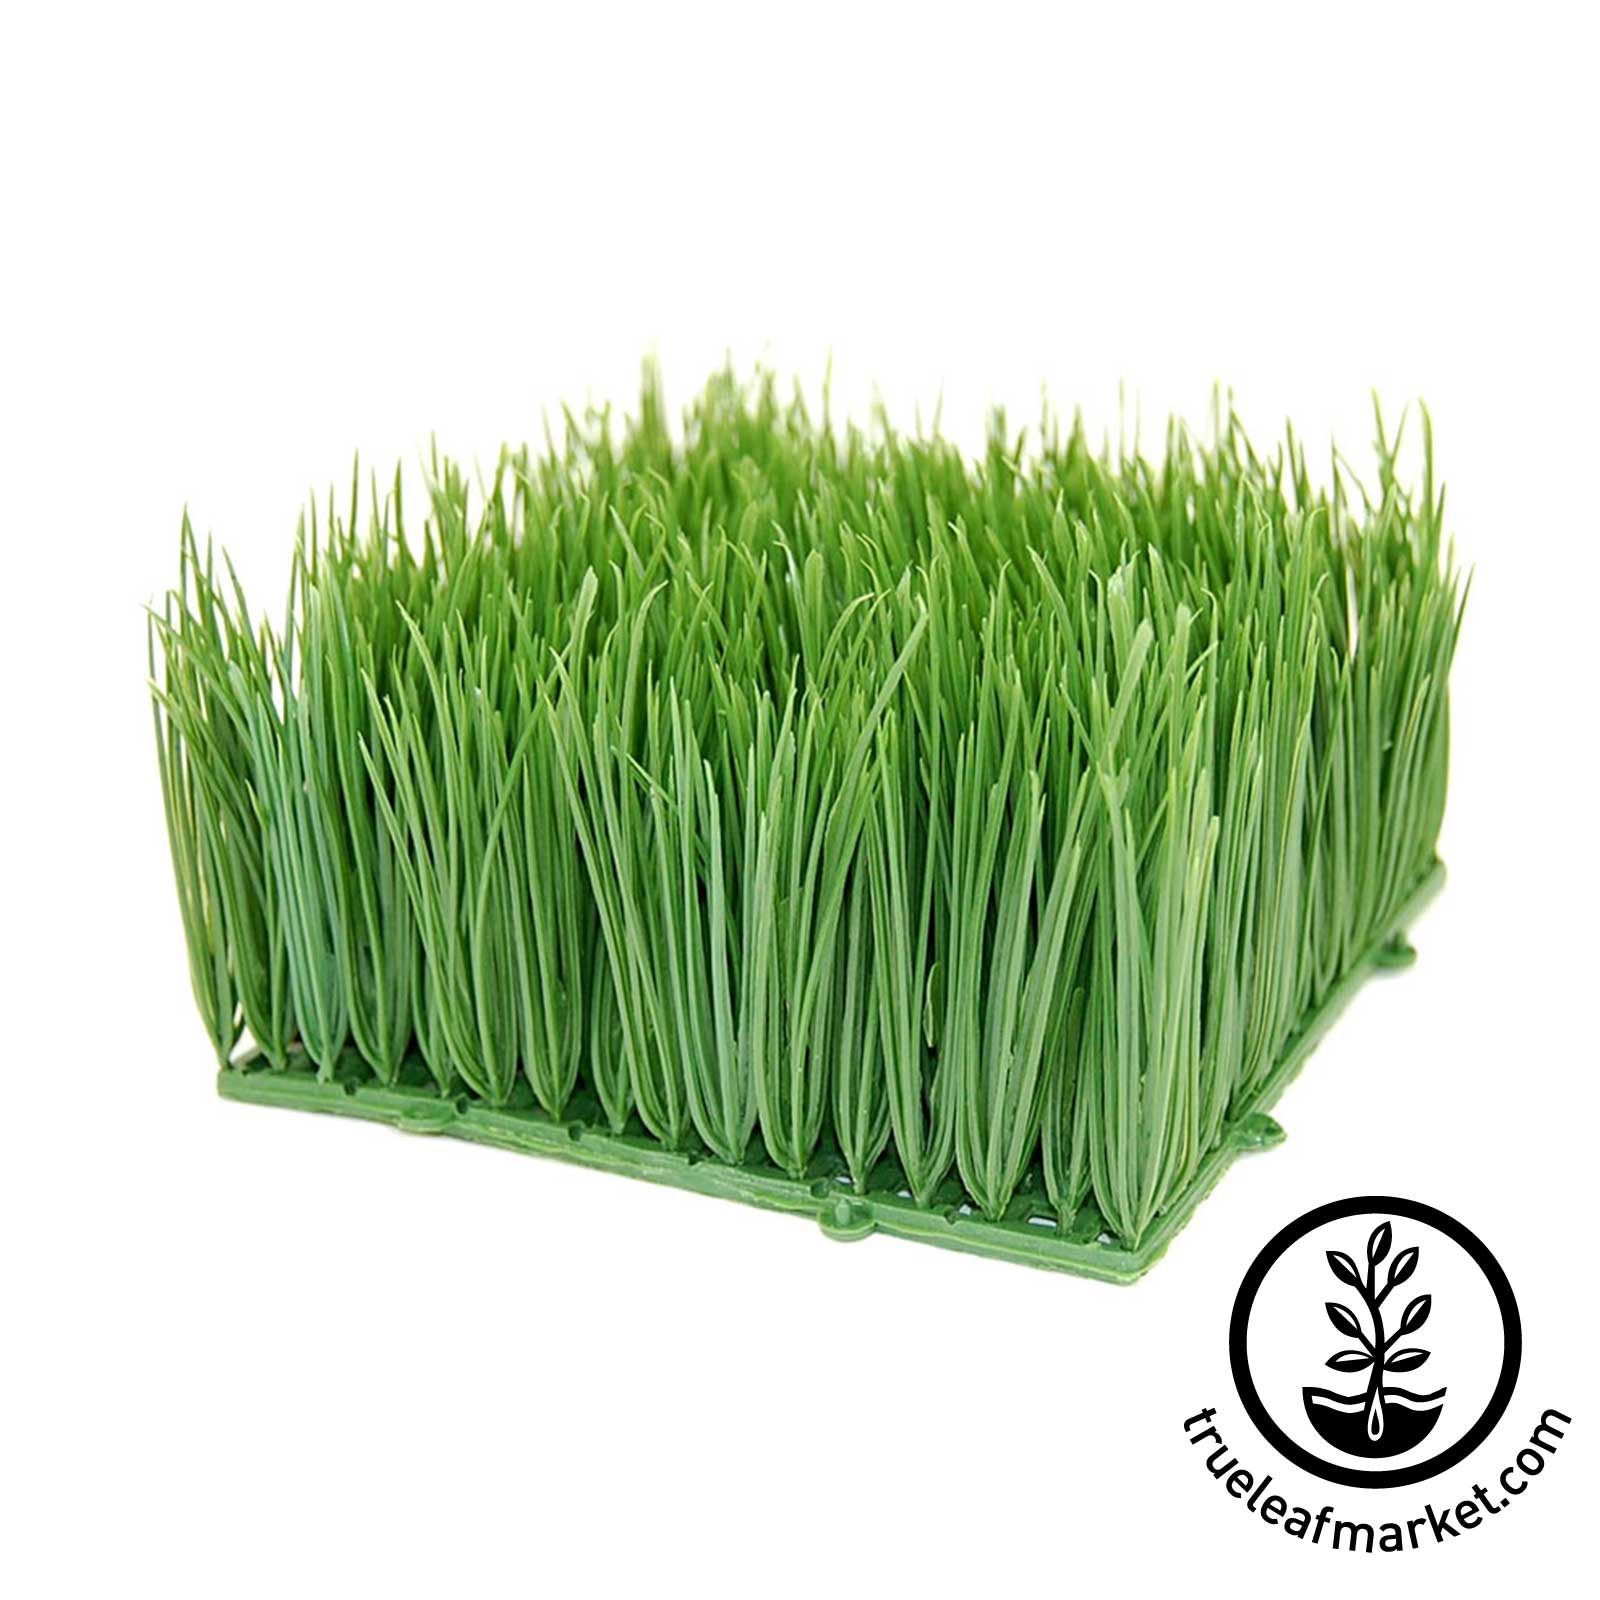 Artificial Wheatgrass 6 inch by 6 inch by 4 inches high